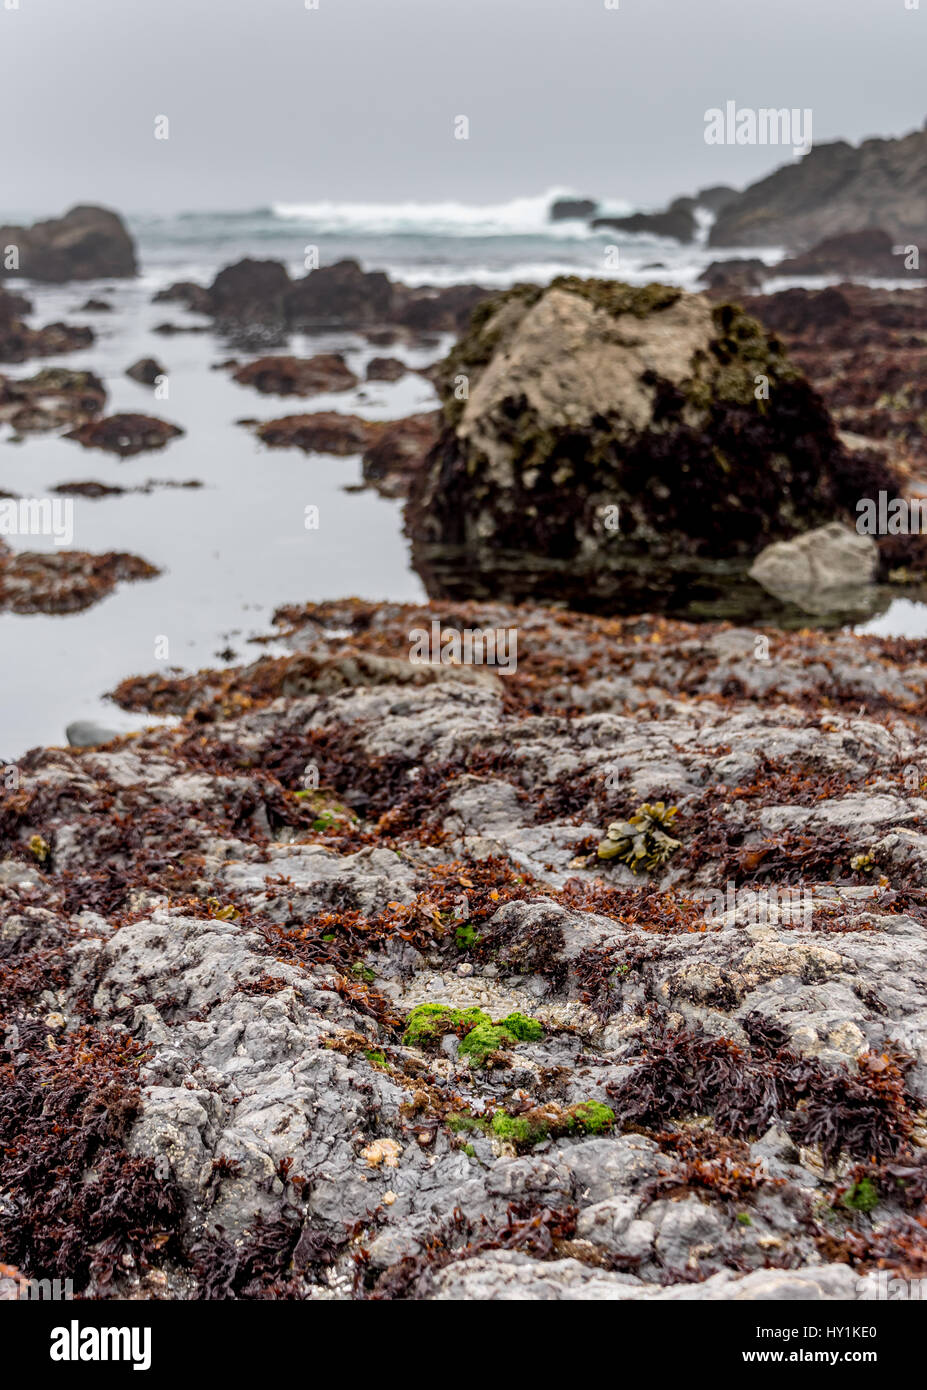 Tide pools at MacKerricher State Park near Fort Bragg in Northern California along Highway 1 on overcast day, great - Stock Image